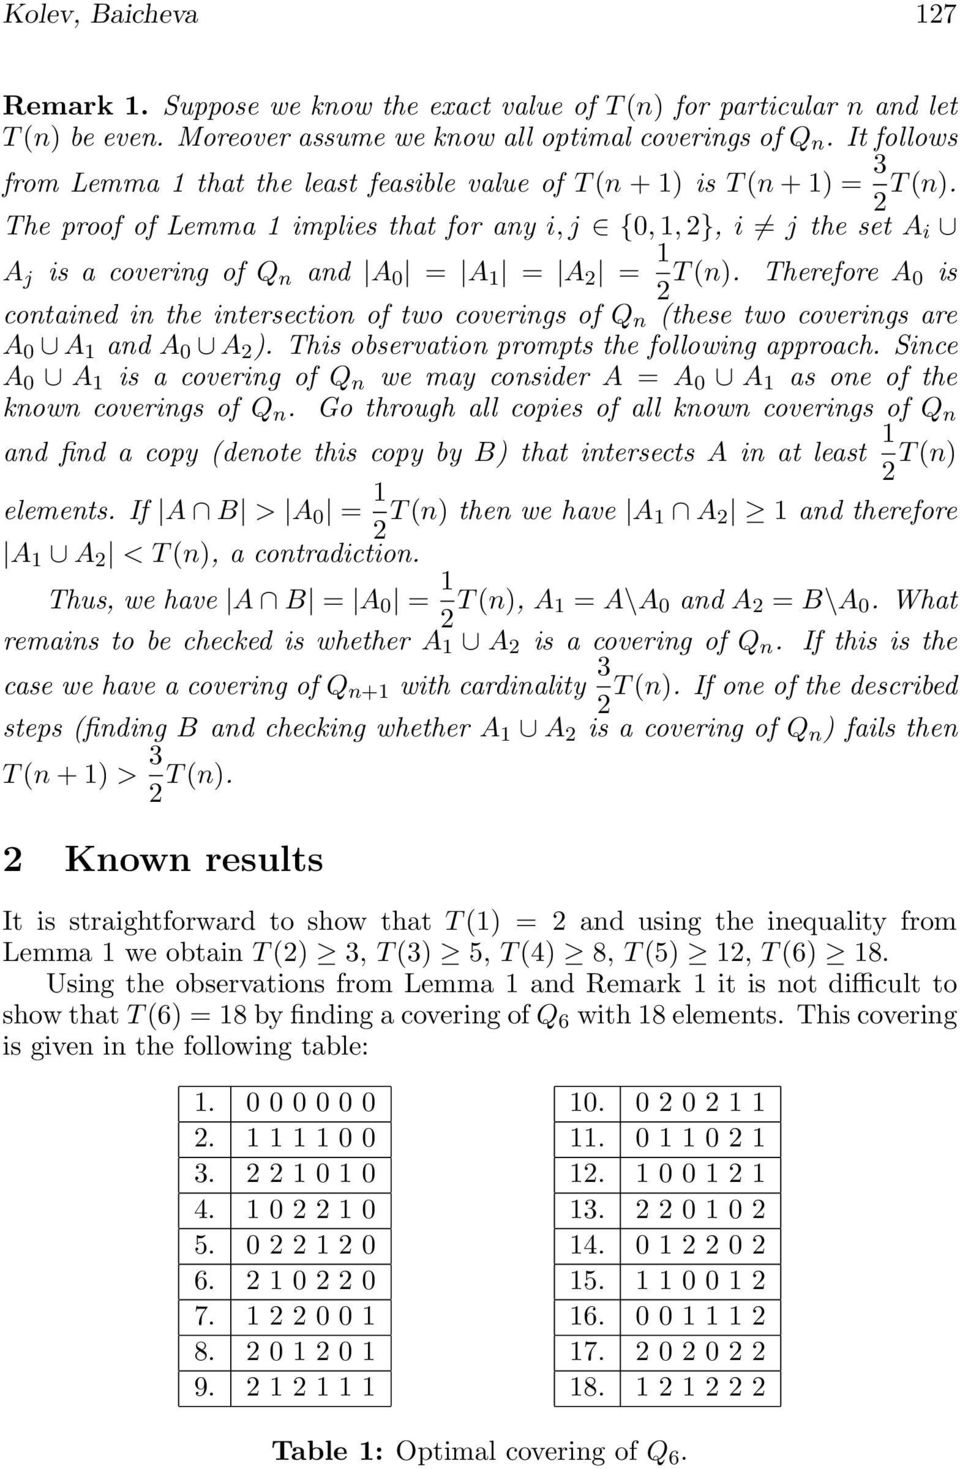 The proof of Lemma 1 implies that for any i, j {0, 1, }, i j the set A i A j is a covering of Q n and A 0 = A 1 = A = 1 T (n).